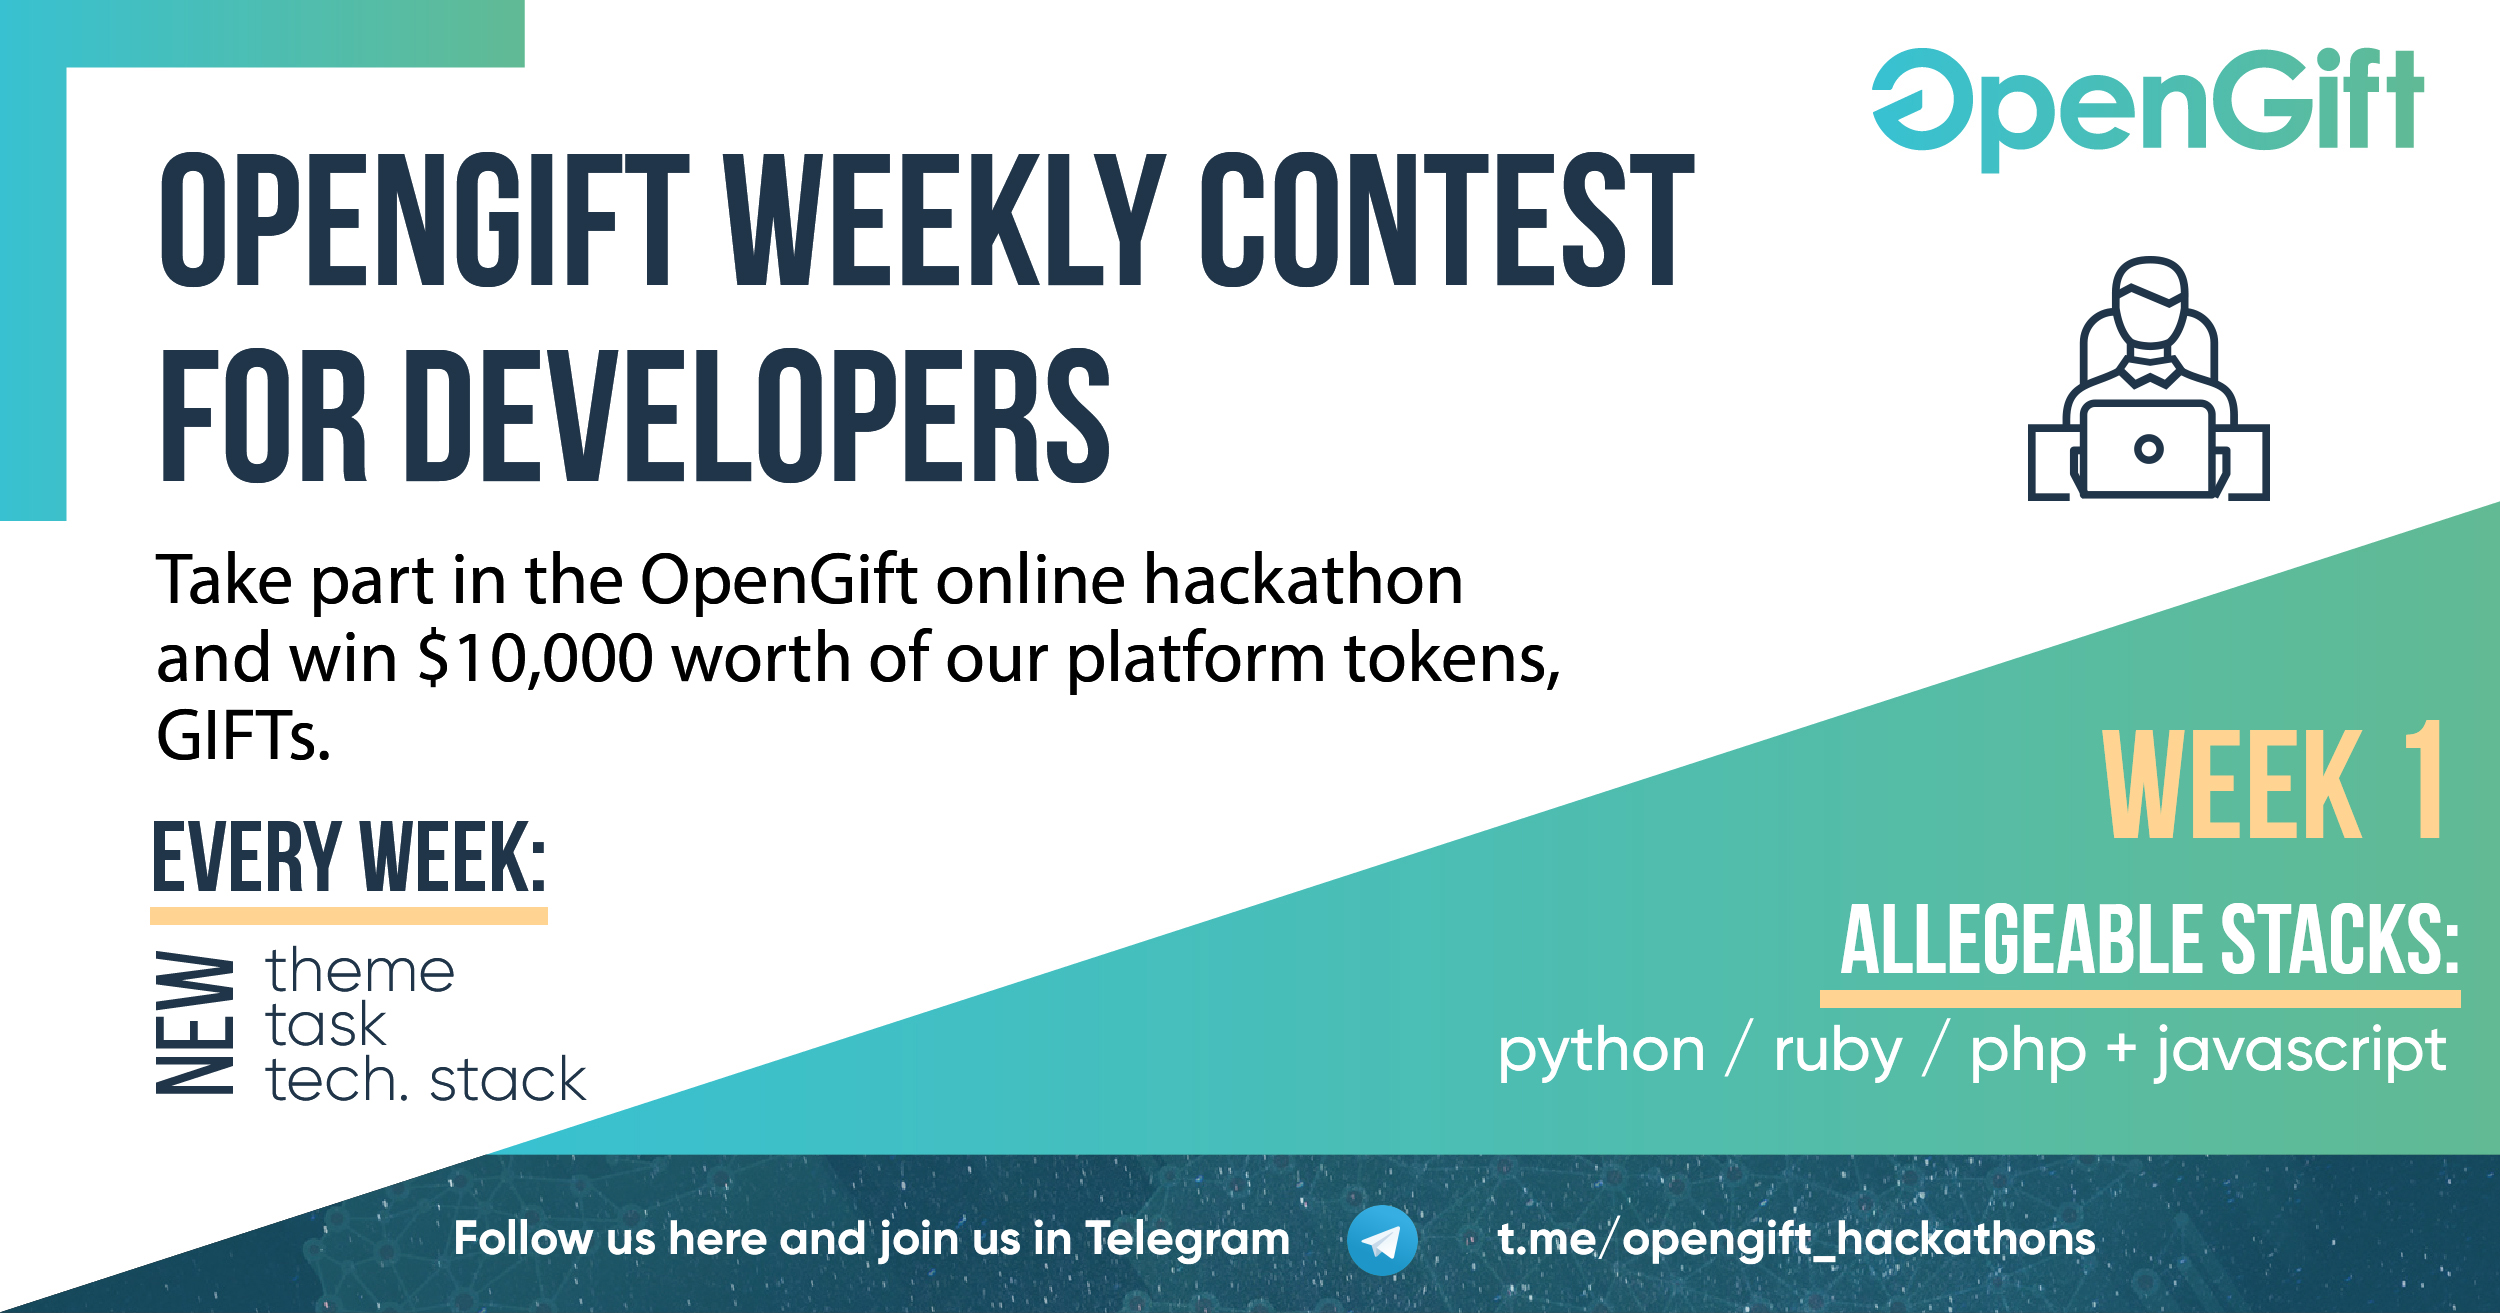 Weekly contest from OpenGift for developers